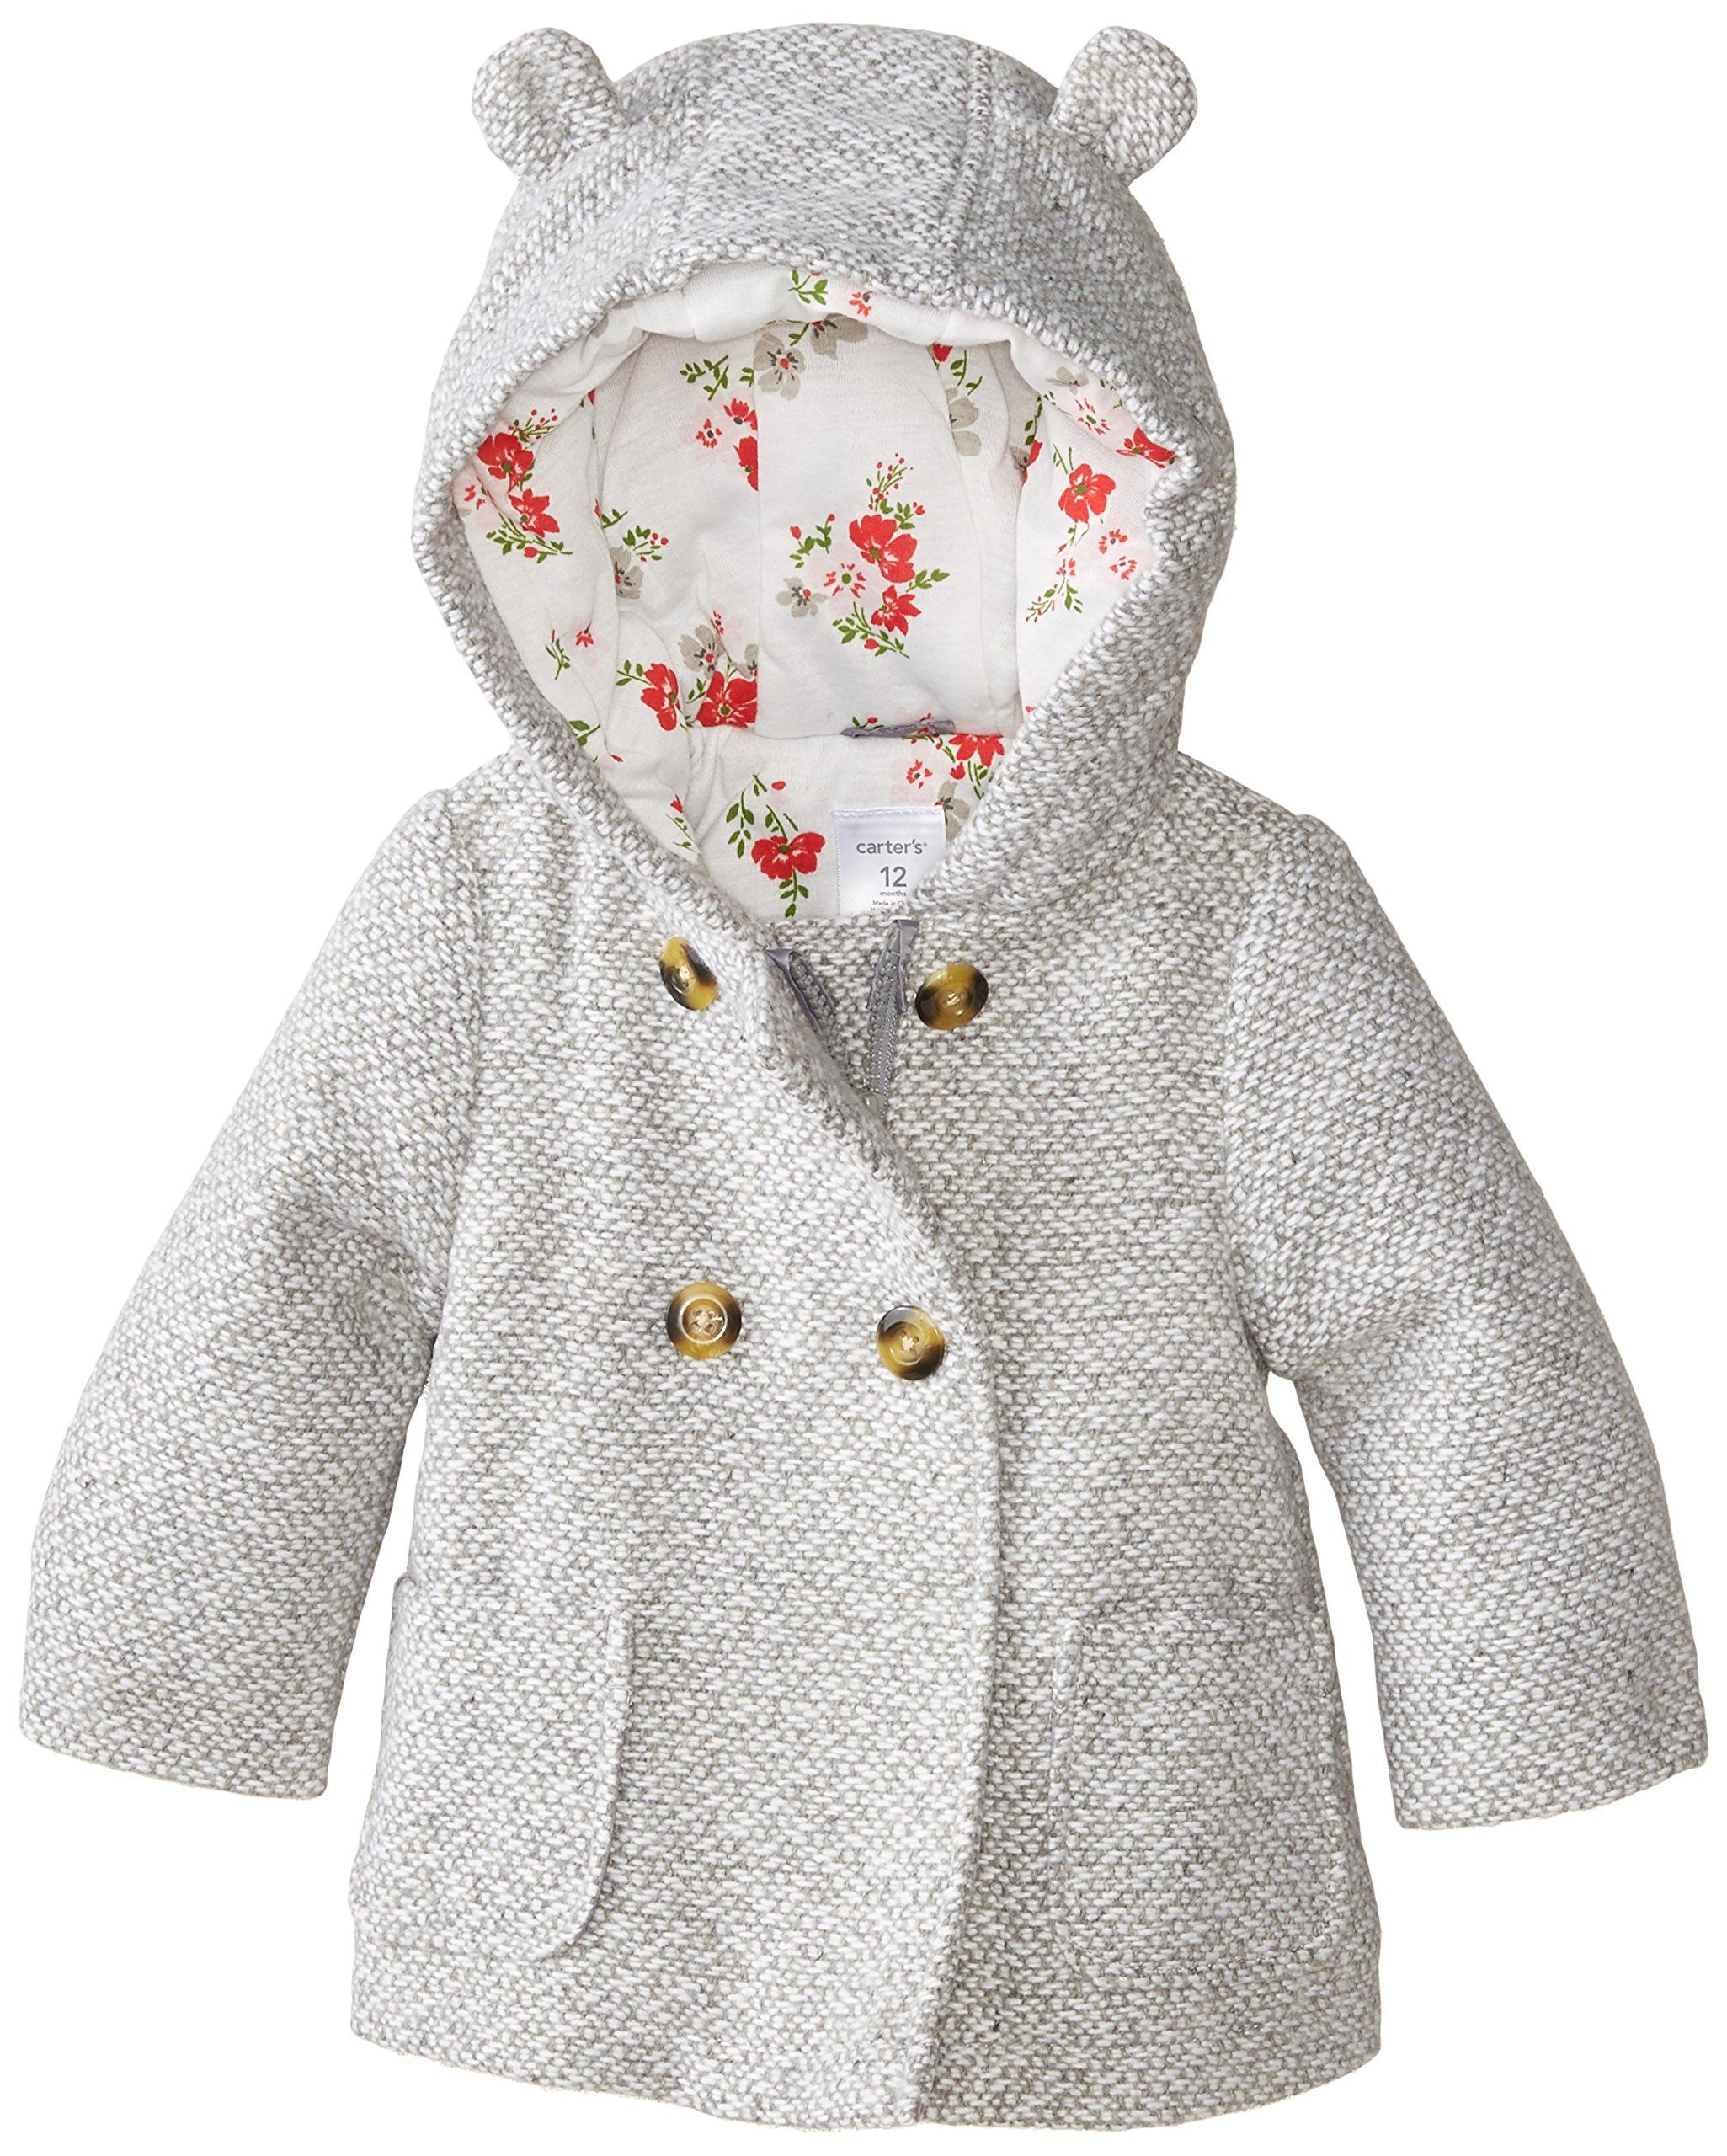 582cebc55 Amazon.com  Carter s Baby Girls  Infants Trans Single Jacket ...